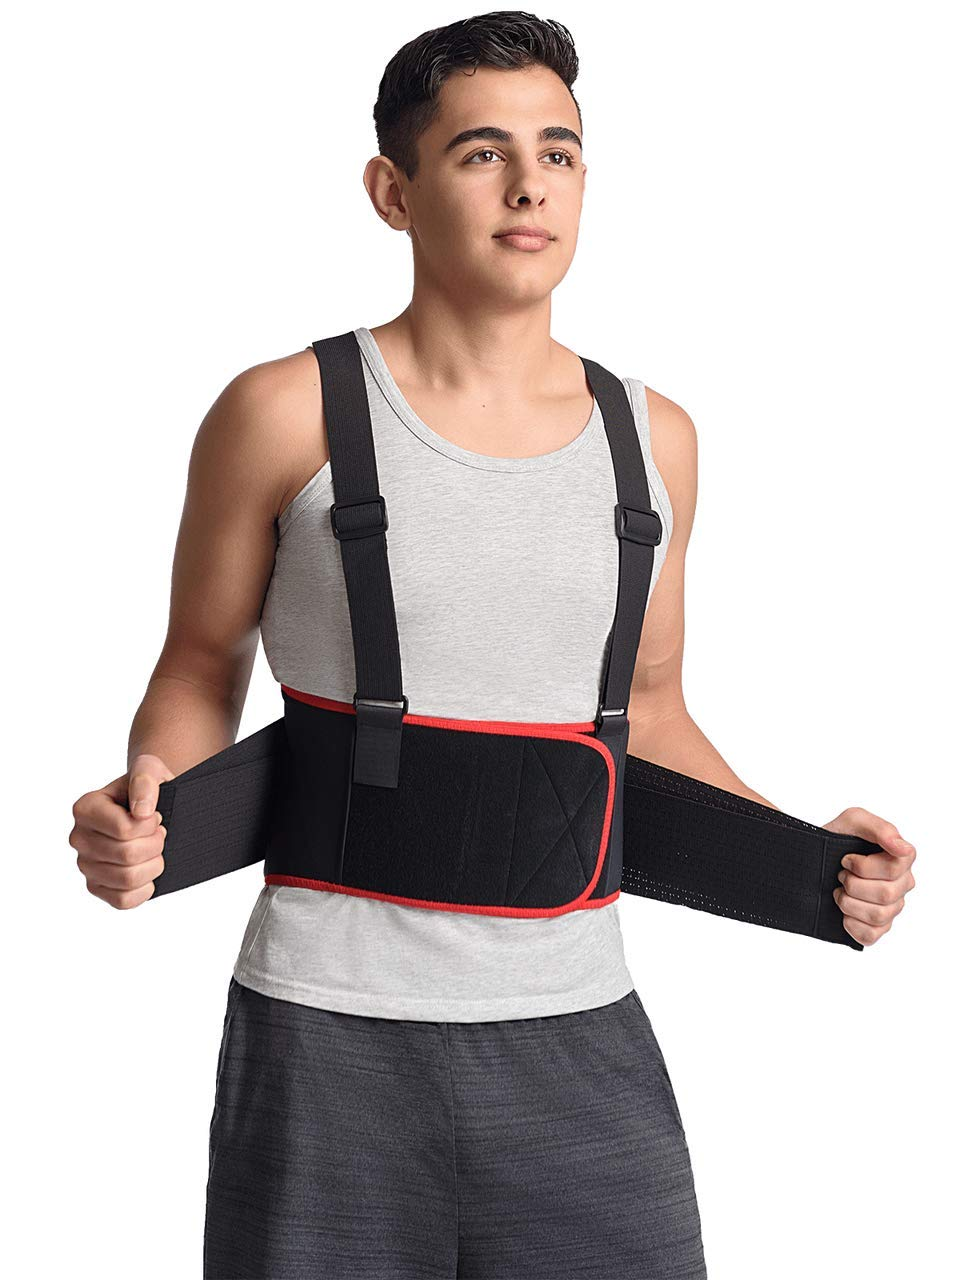 MAXAR Breathable Lower Back Support with Detachable Suspenders IBS-3000: Black Medium